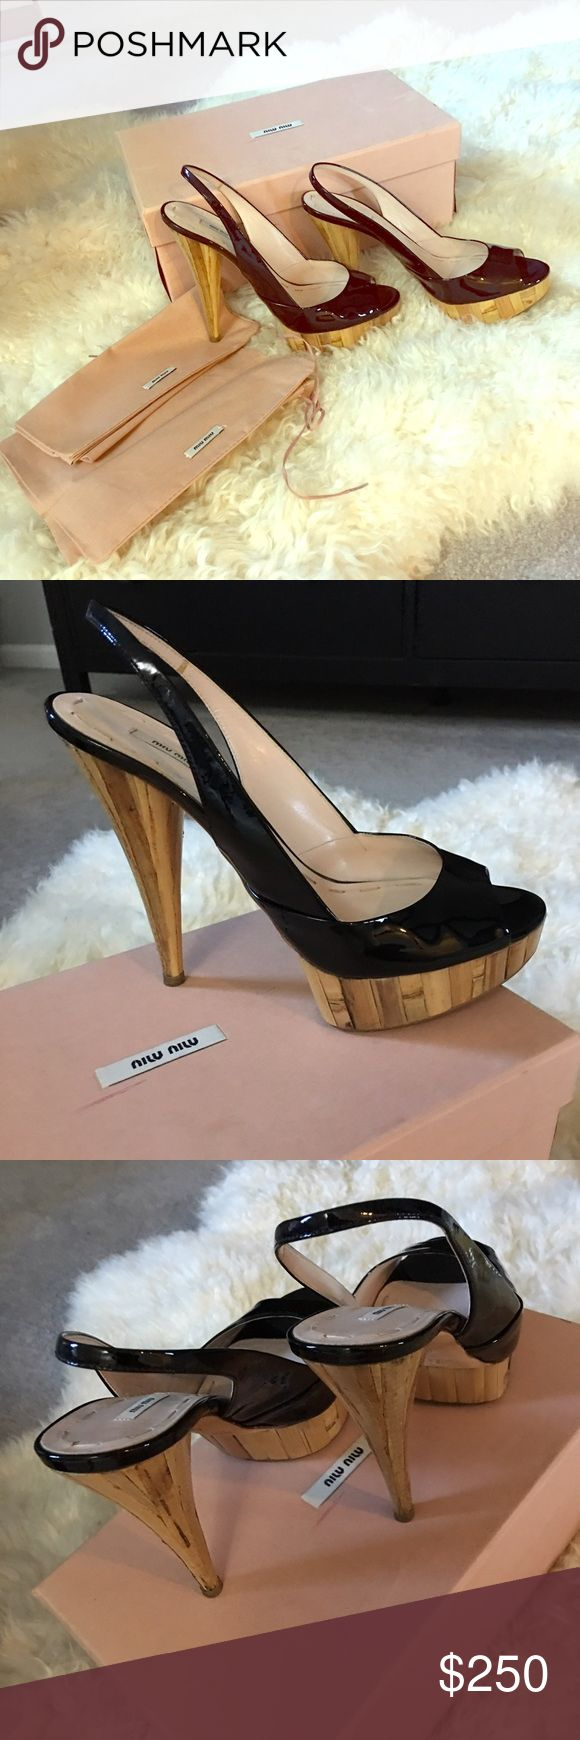 Miu miu wooden platform slingback sandal Never worn outside just tried it inside the house :) ... one of a kind wooden heels .. Miu Miu Shoes Platforms